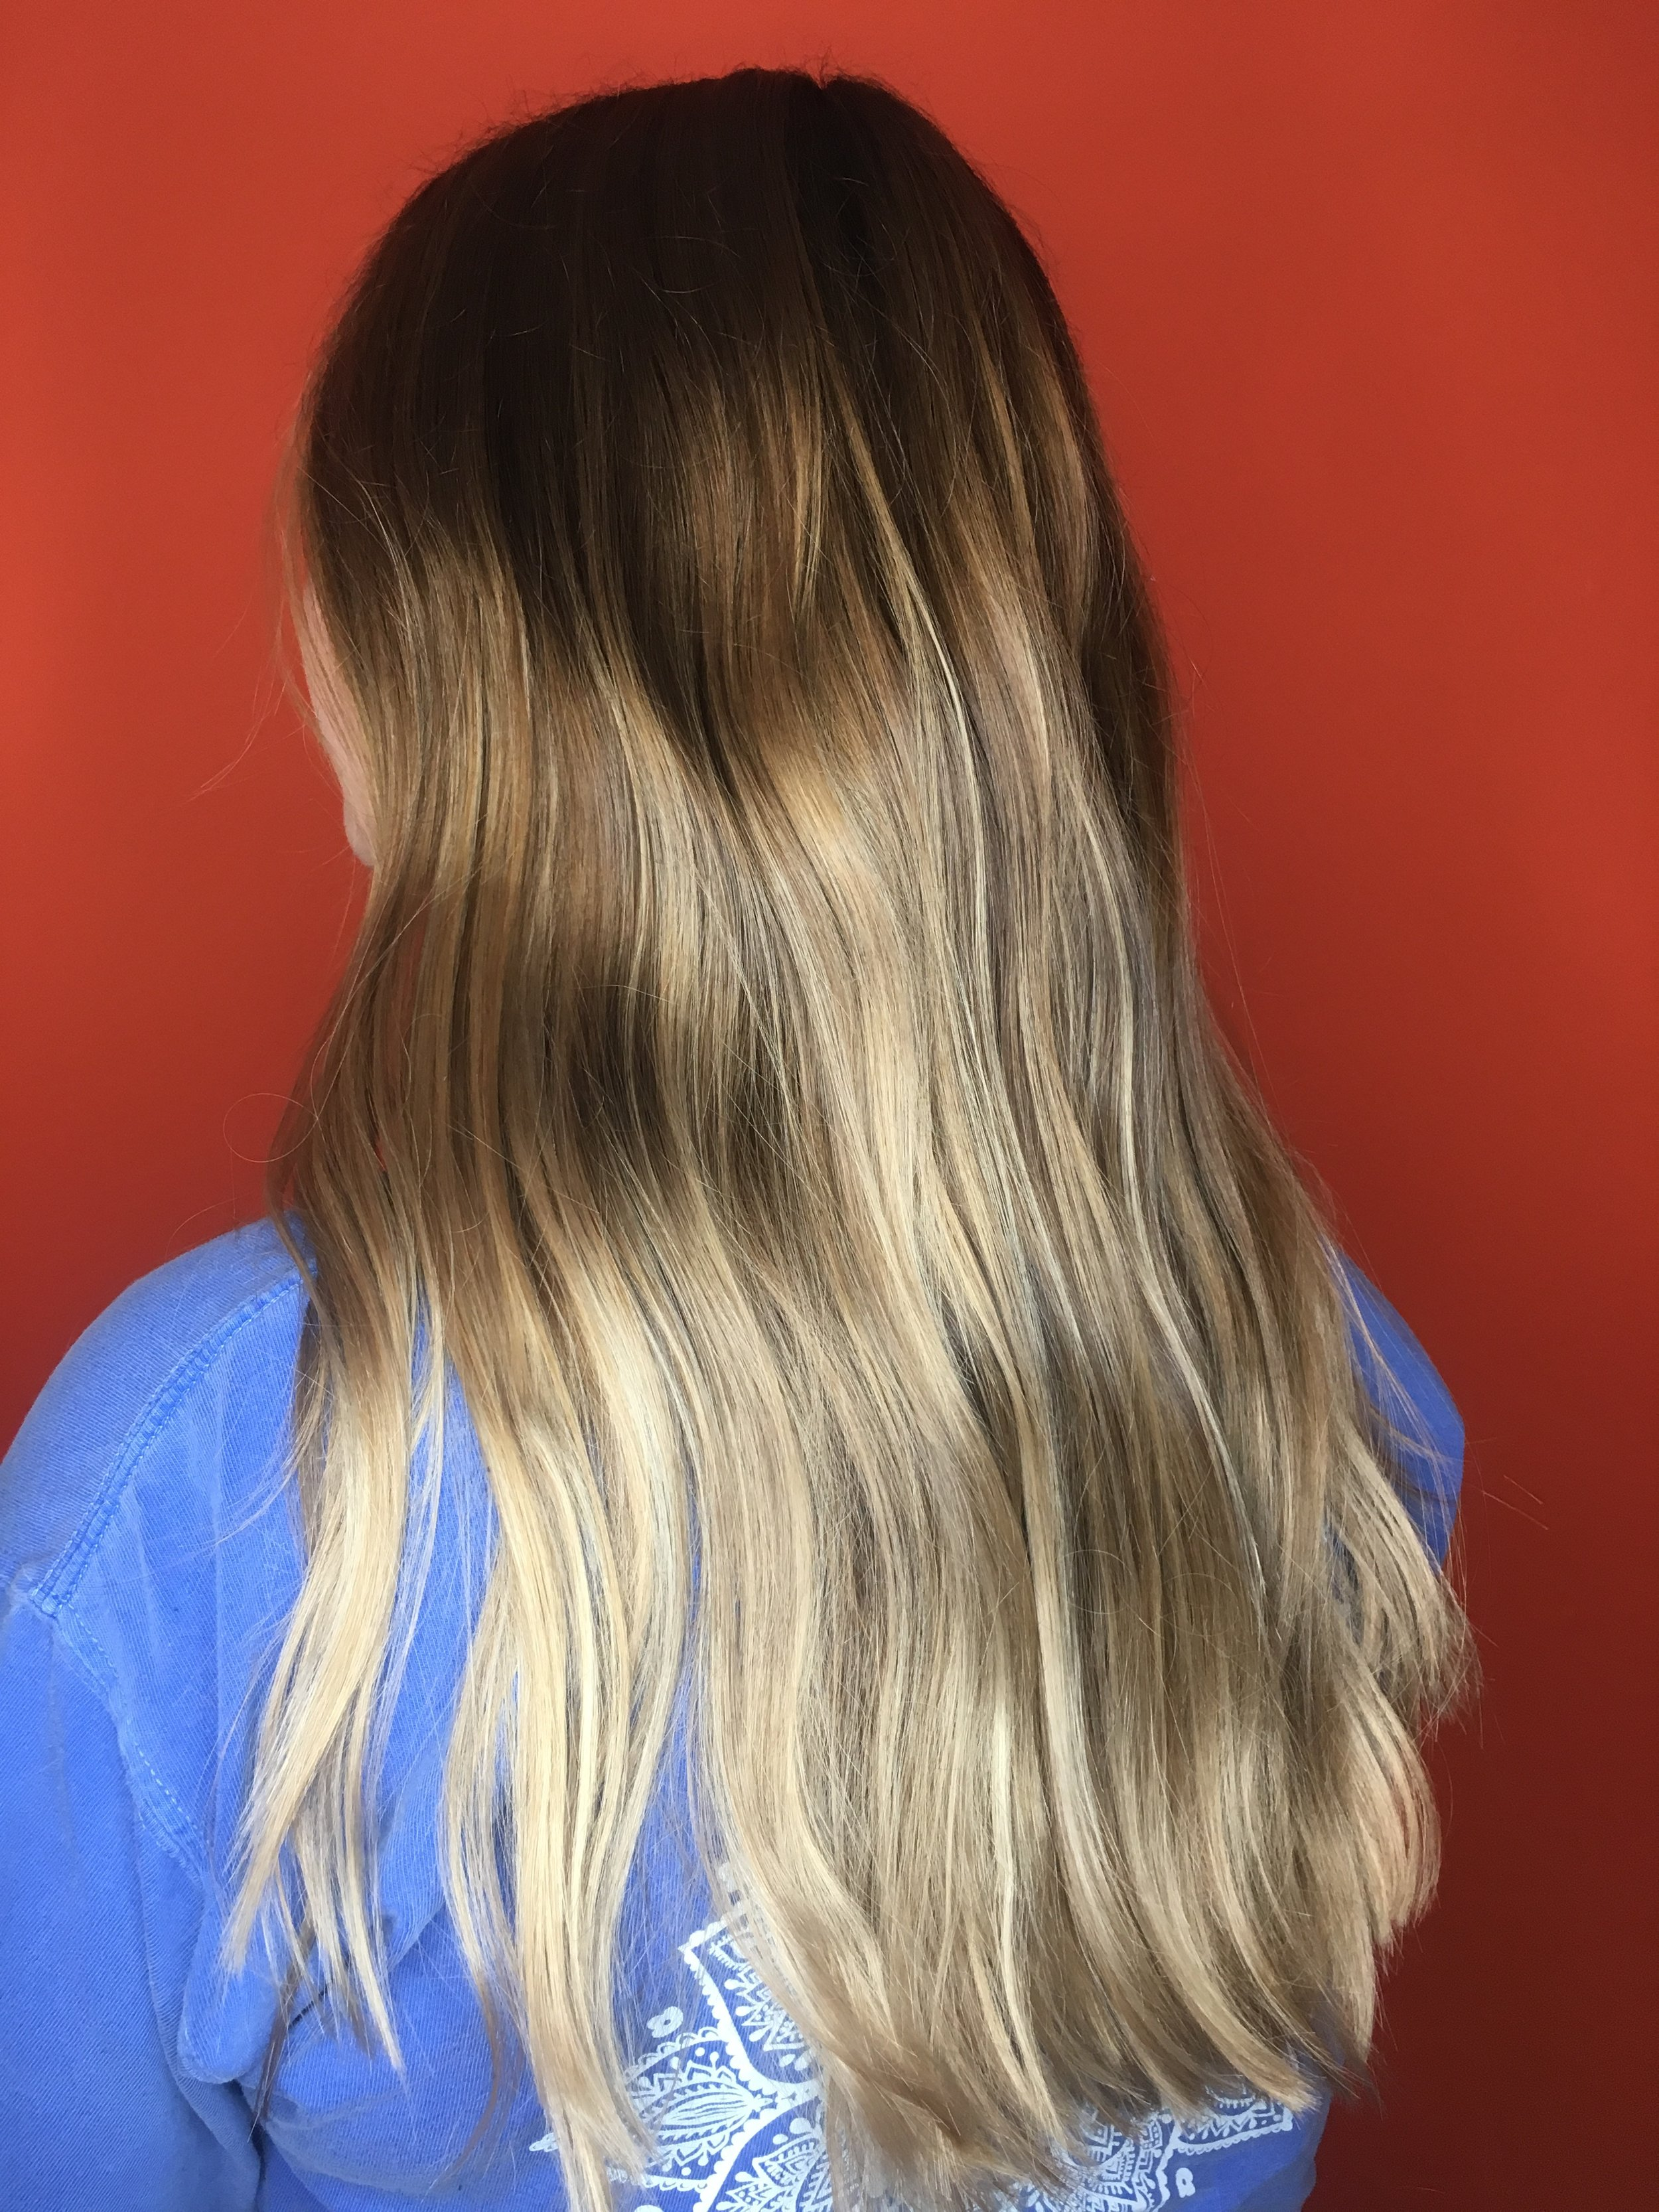 A reverse balayage color melt for a client at Designory Hair & Makeup Studio.